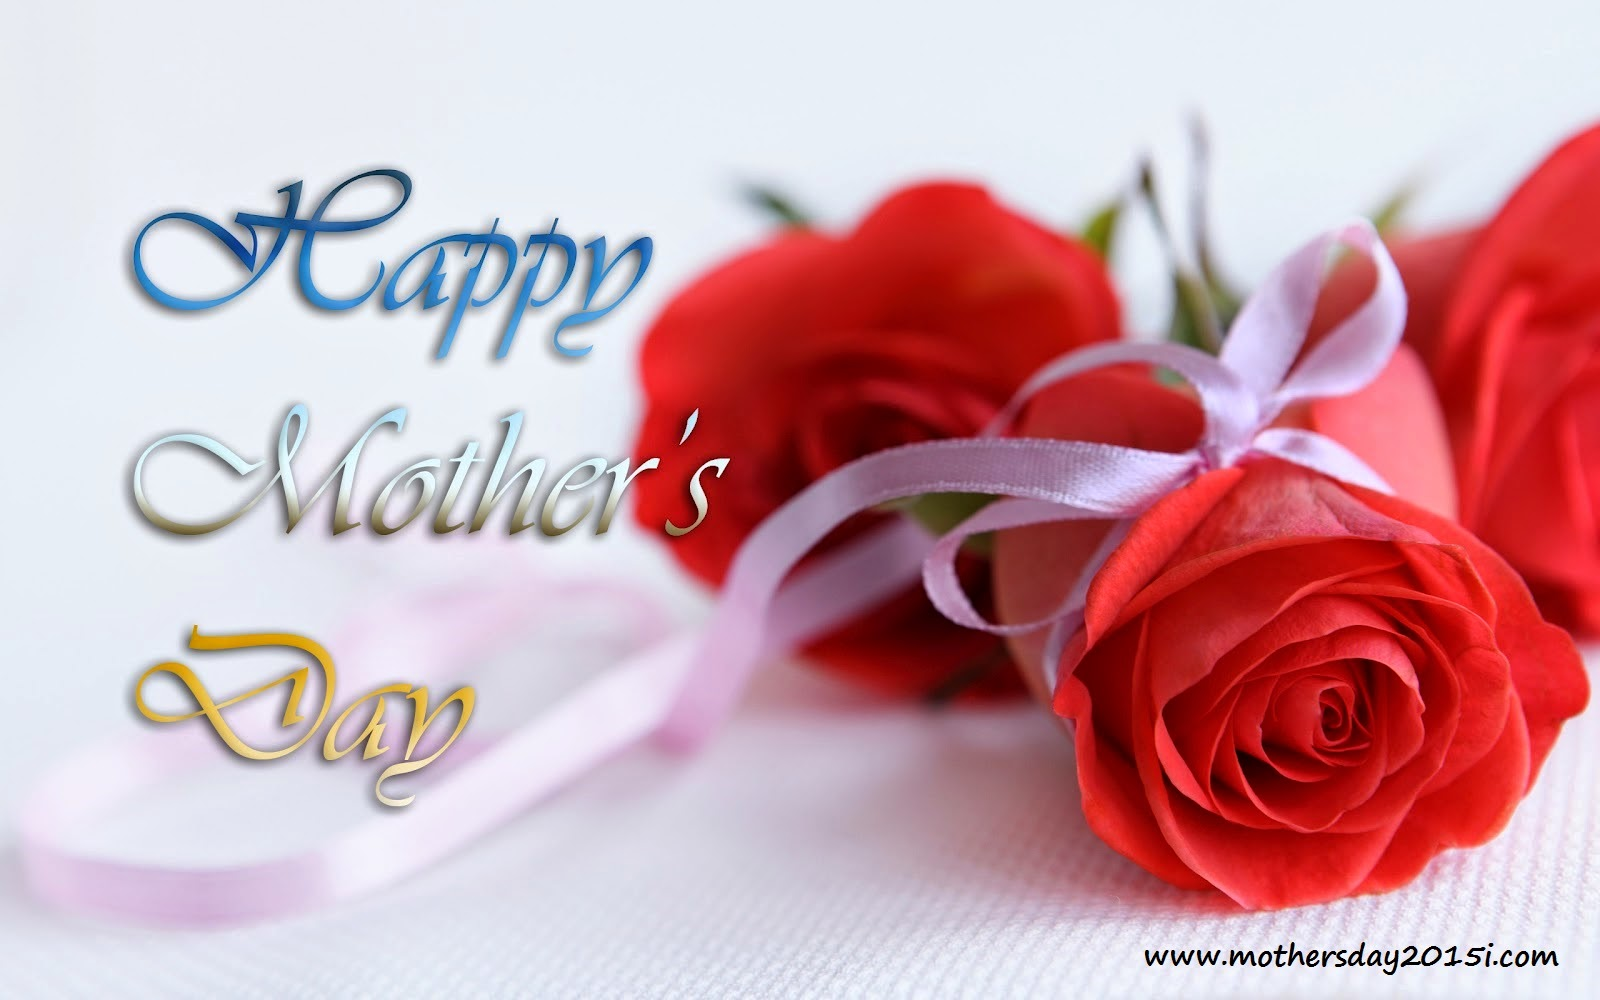 Happy Mothers Day Date Serbia :- 8 / 3/ 2015 (March)